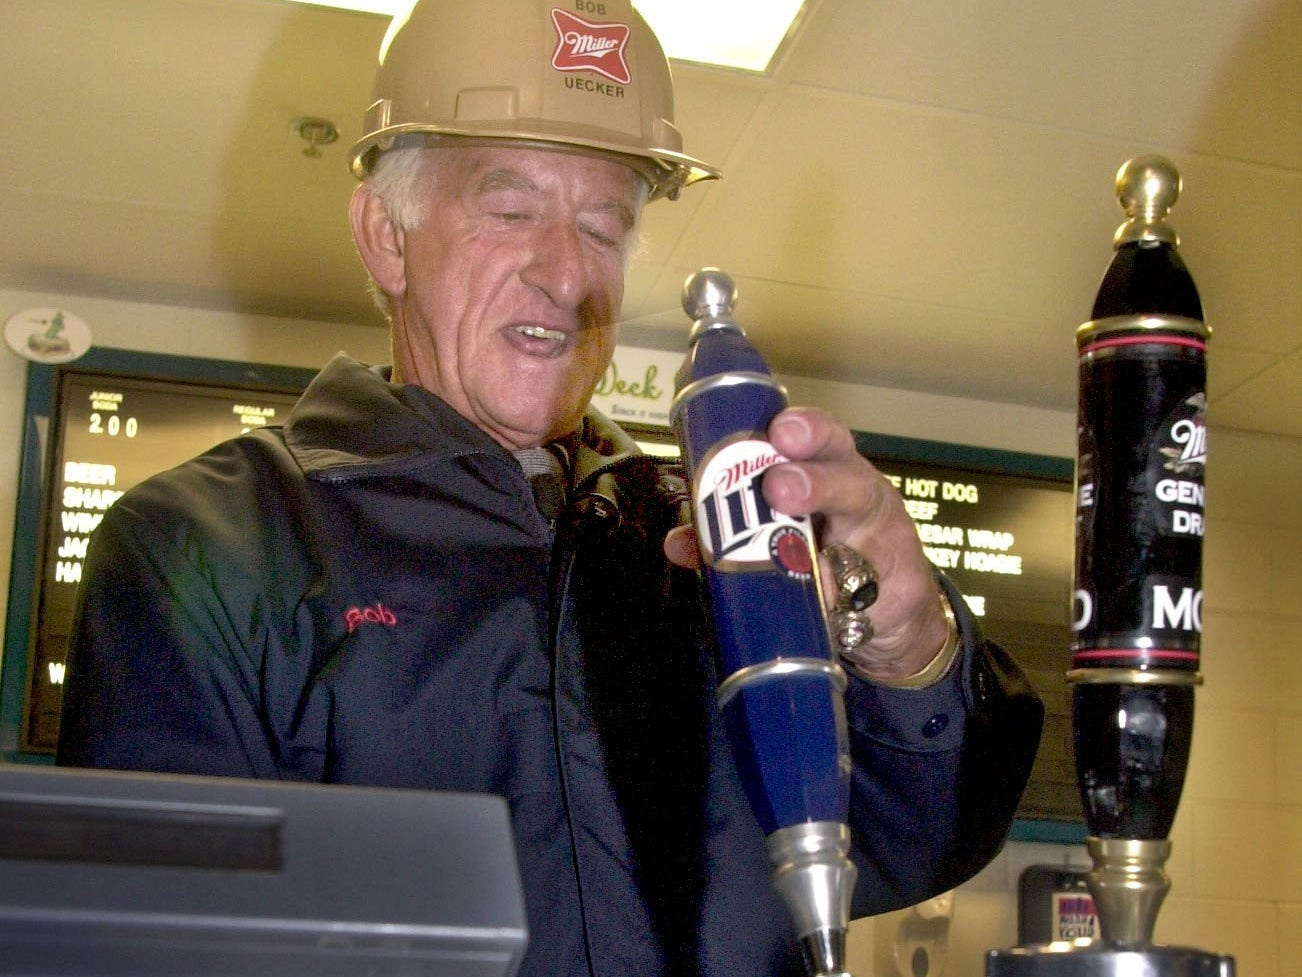 Bob Uecker draws the first beer at a concession stand in Miller Park Thursday, March 28, 2001.